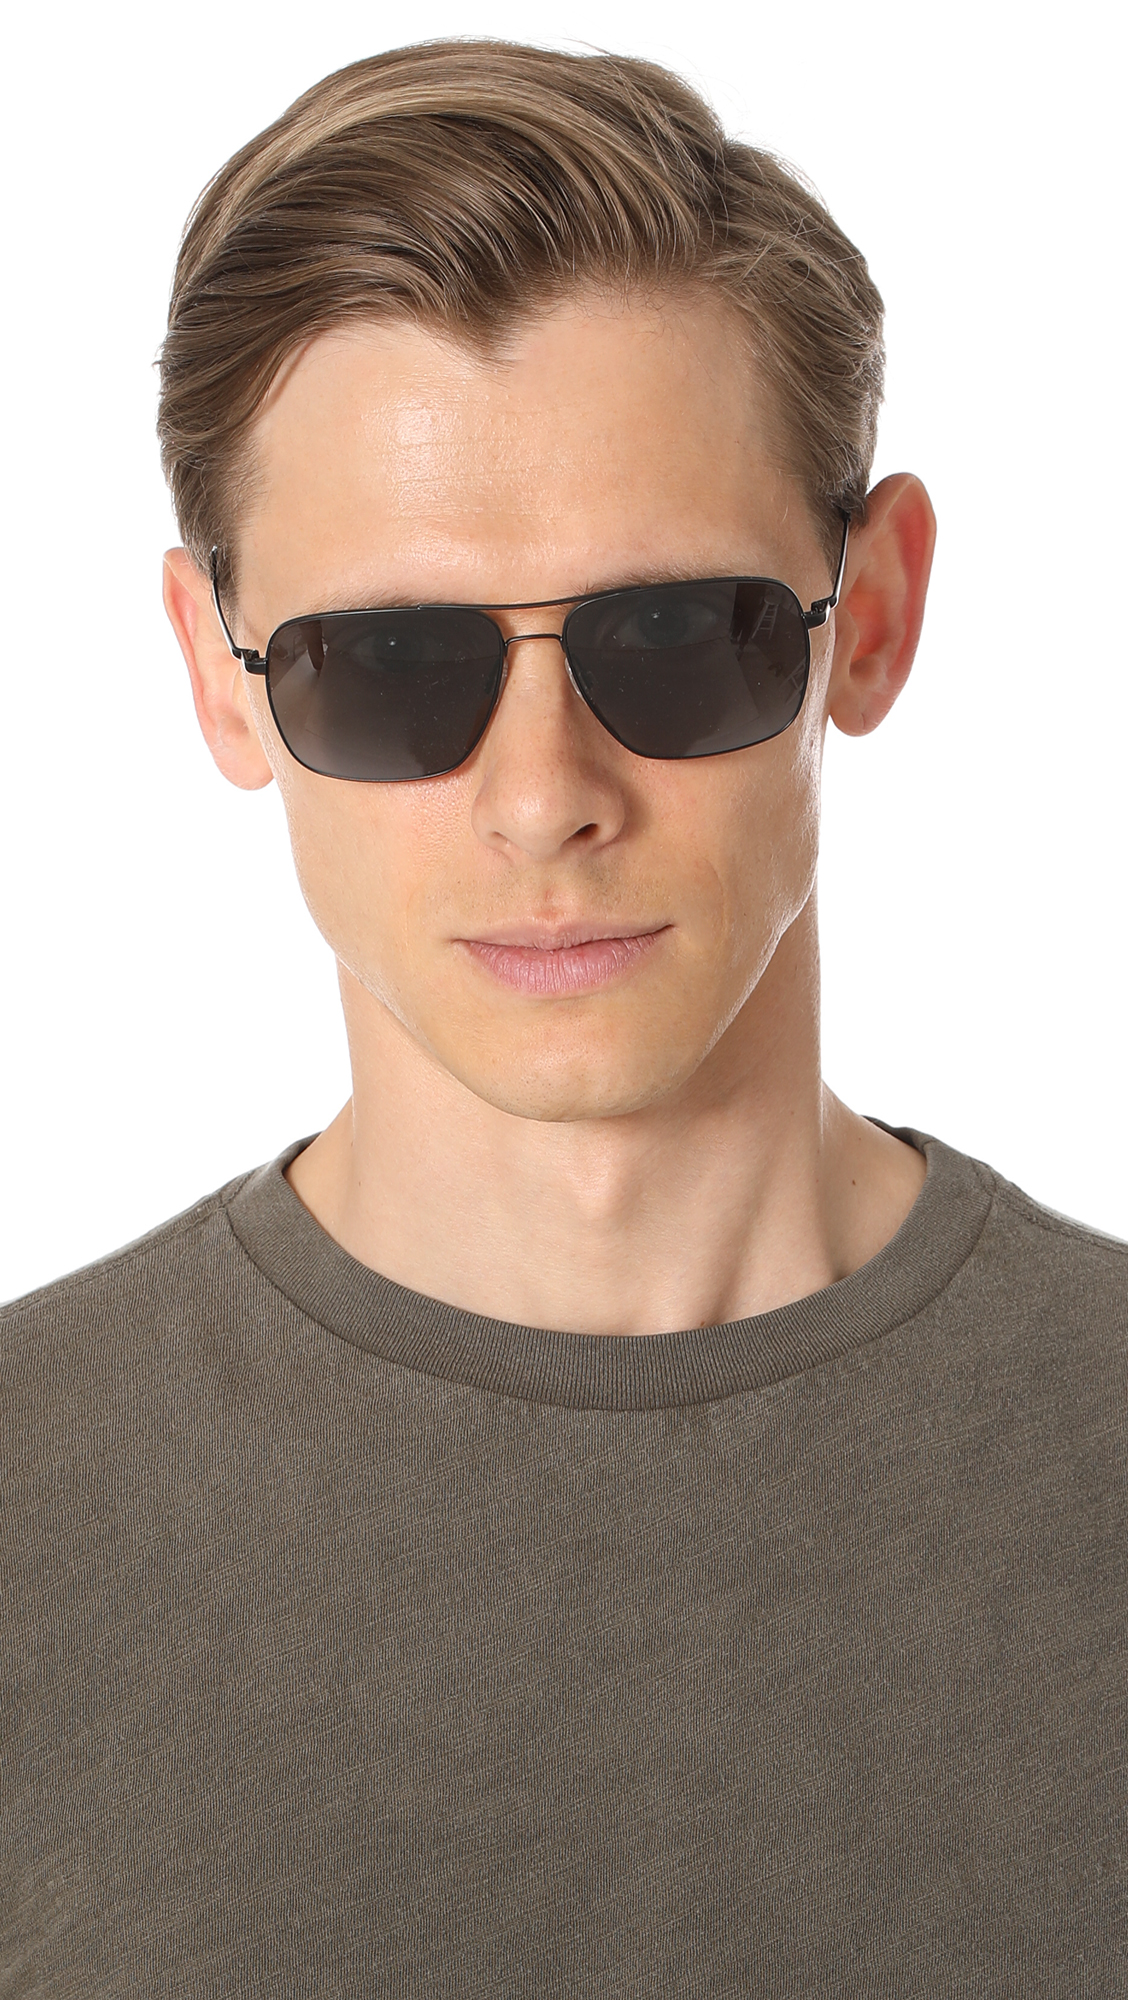 84cd8afc801 Oliver Peoples Eyewear Clifton Sunglasses